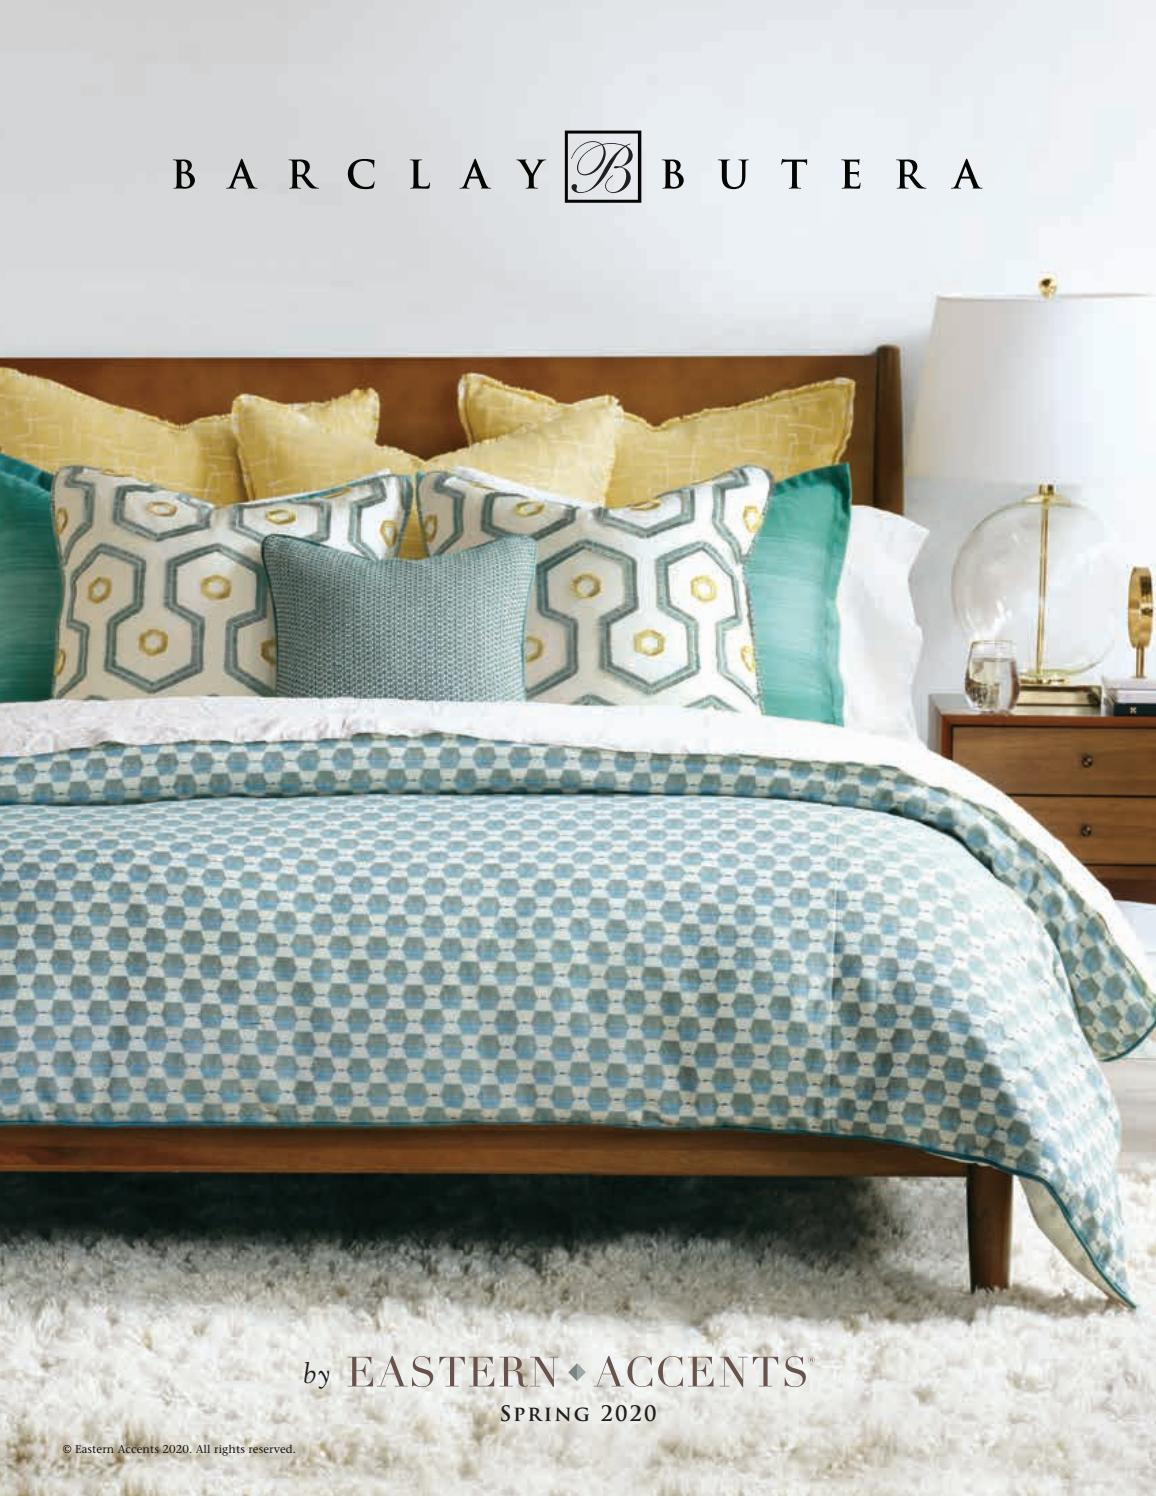 Barclay Butera Lifestyle Bedding By Eastern Accents Issuu